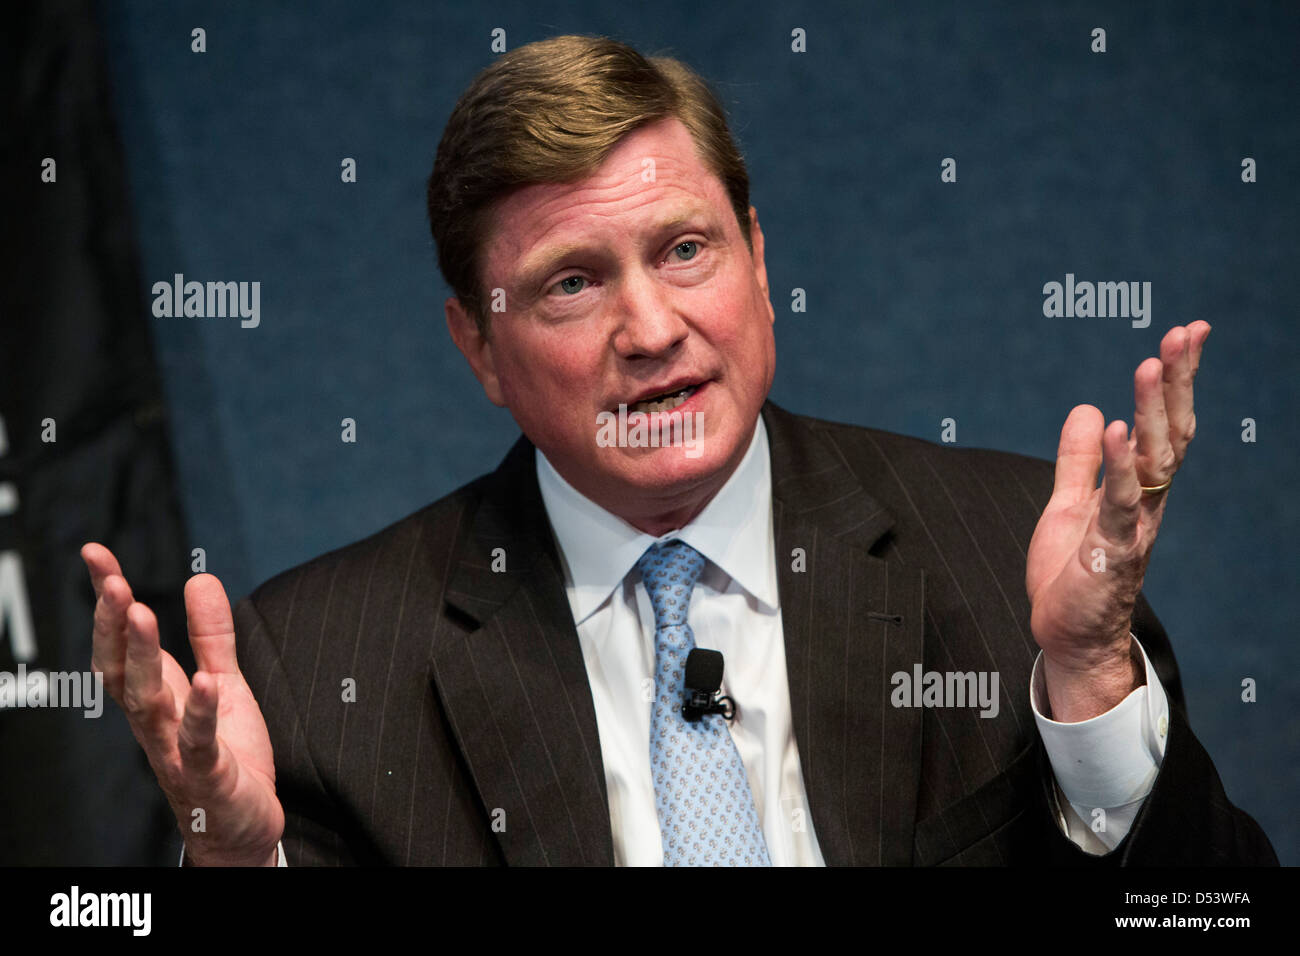 Thomas Fanning, chairman, president and CEO of Southern Company. - Stock Image